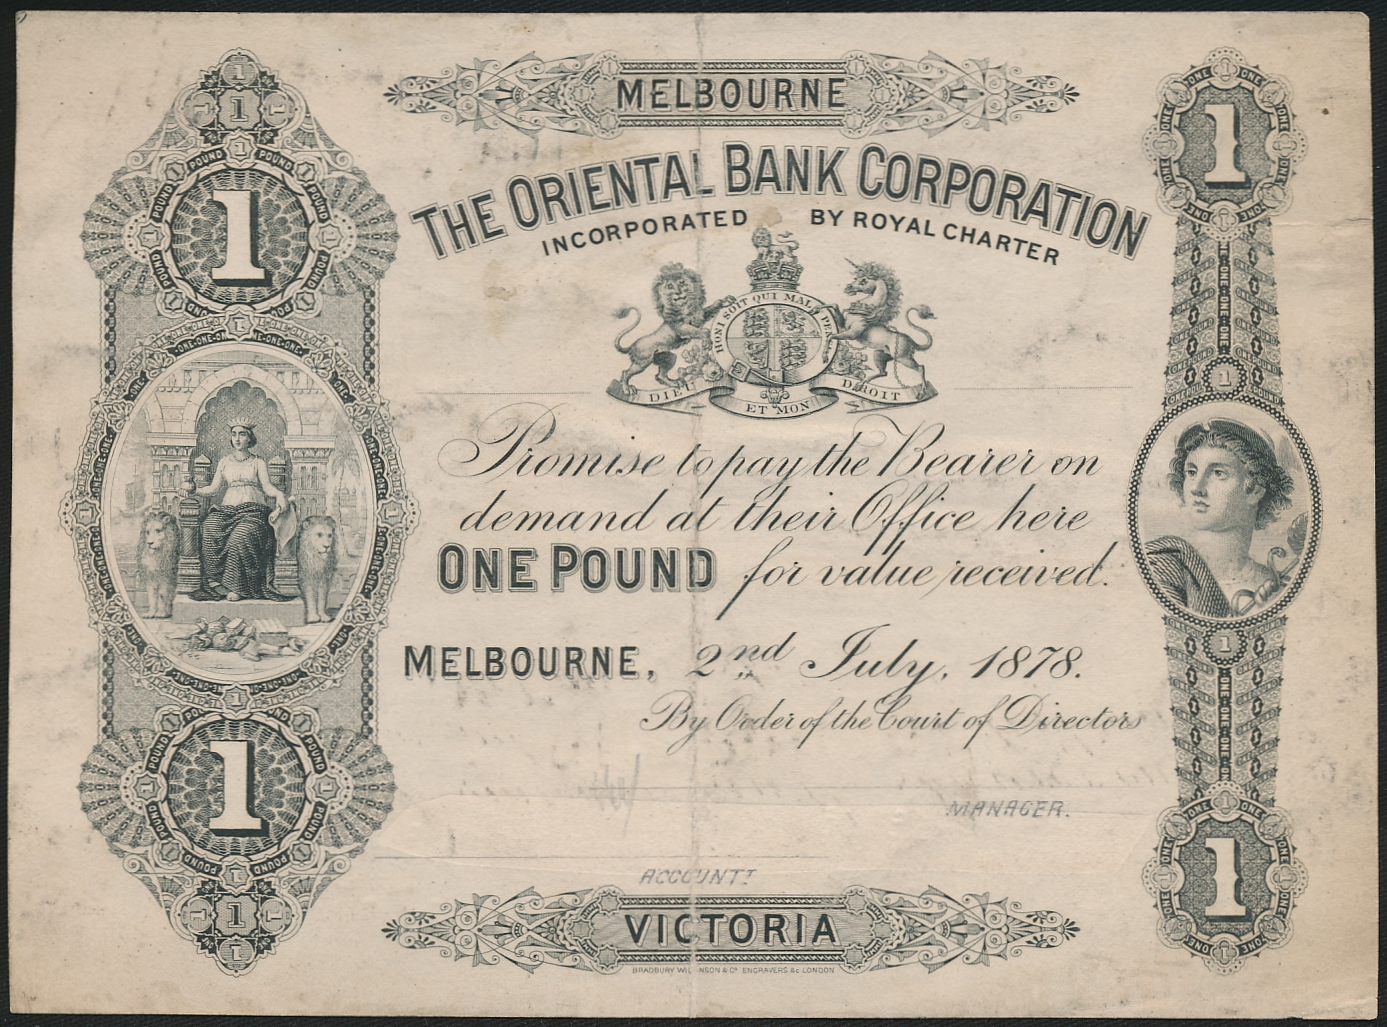 Australia-1878-Oriental-Bank-Corporation-Melbourne-1-Cat-24-000-RARE